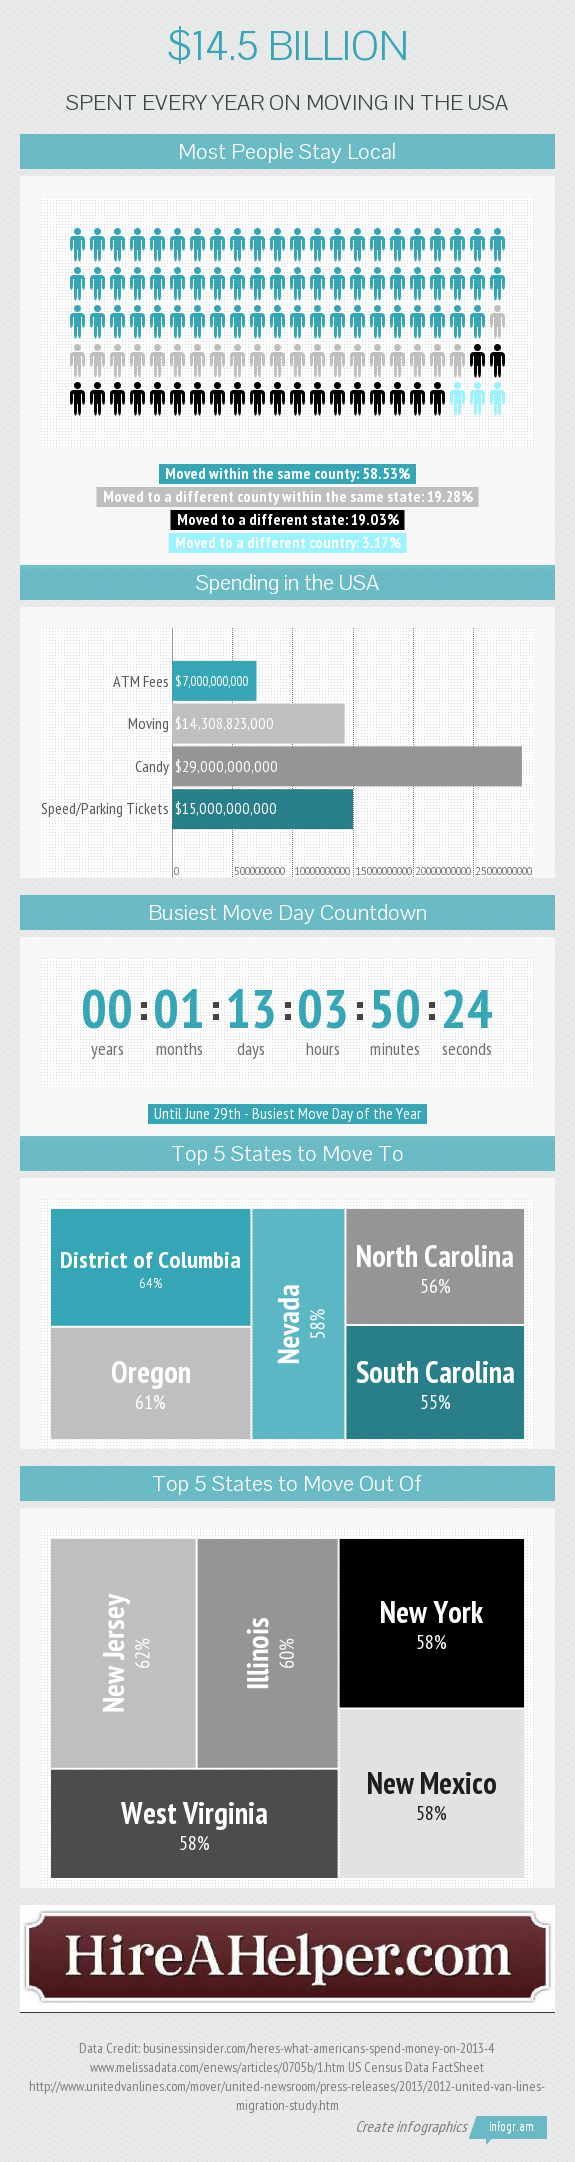 The Cost of Moving in The U.S. - An Infographic from Infographics Showcase